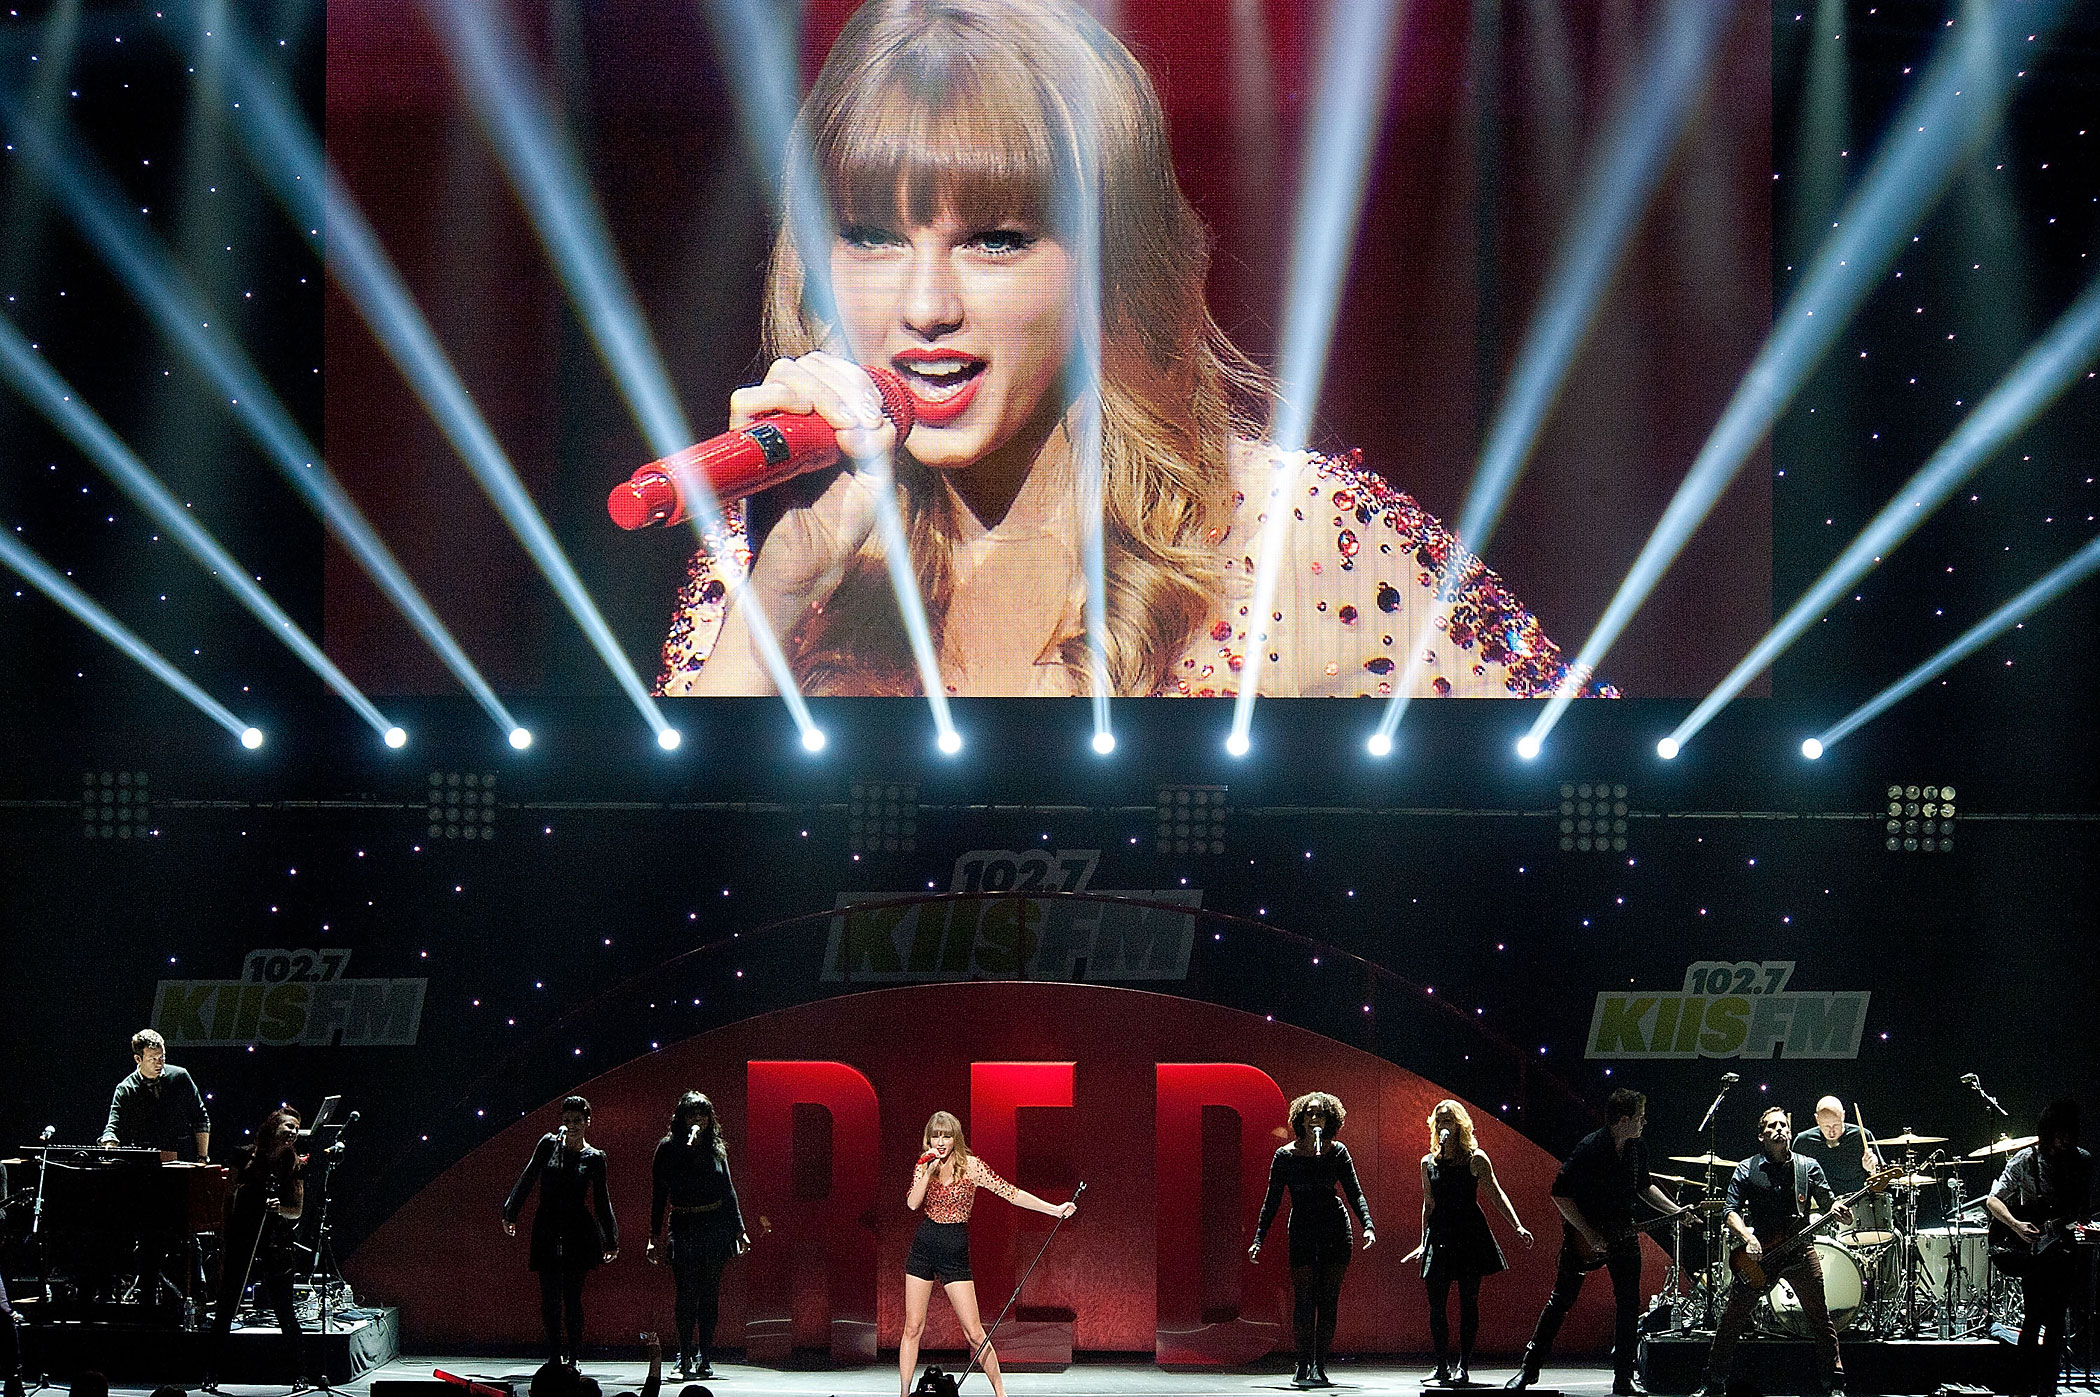 Taylor Swift performs during night 1 of the 2012 KIIS FM Jingle Ball at Nokia Theatre LA Live in Los Angeles, California.